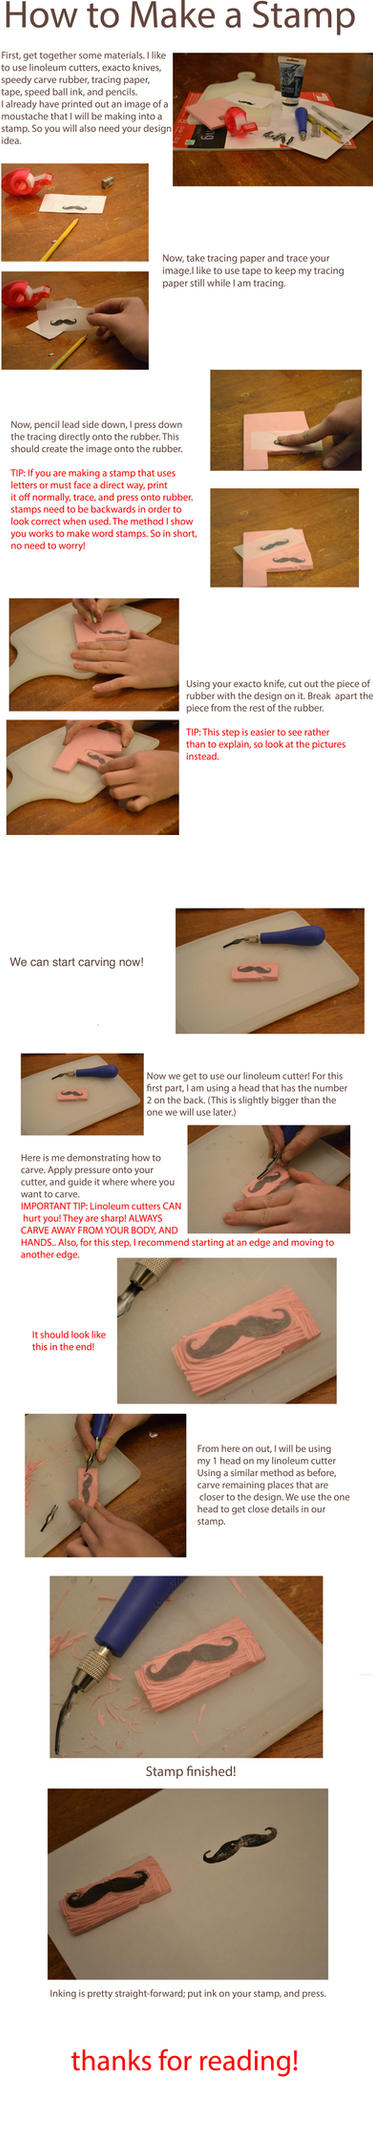 How to Make a Rubber Stamp Tutorial by Littel-Gerll